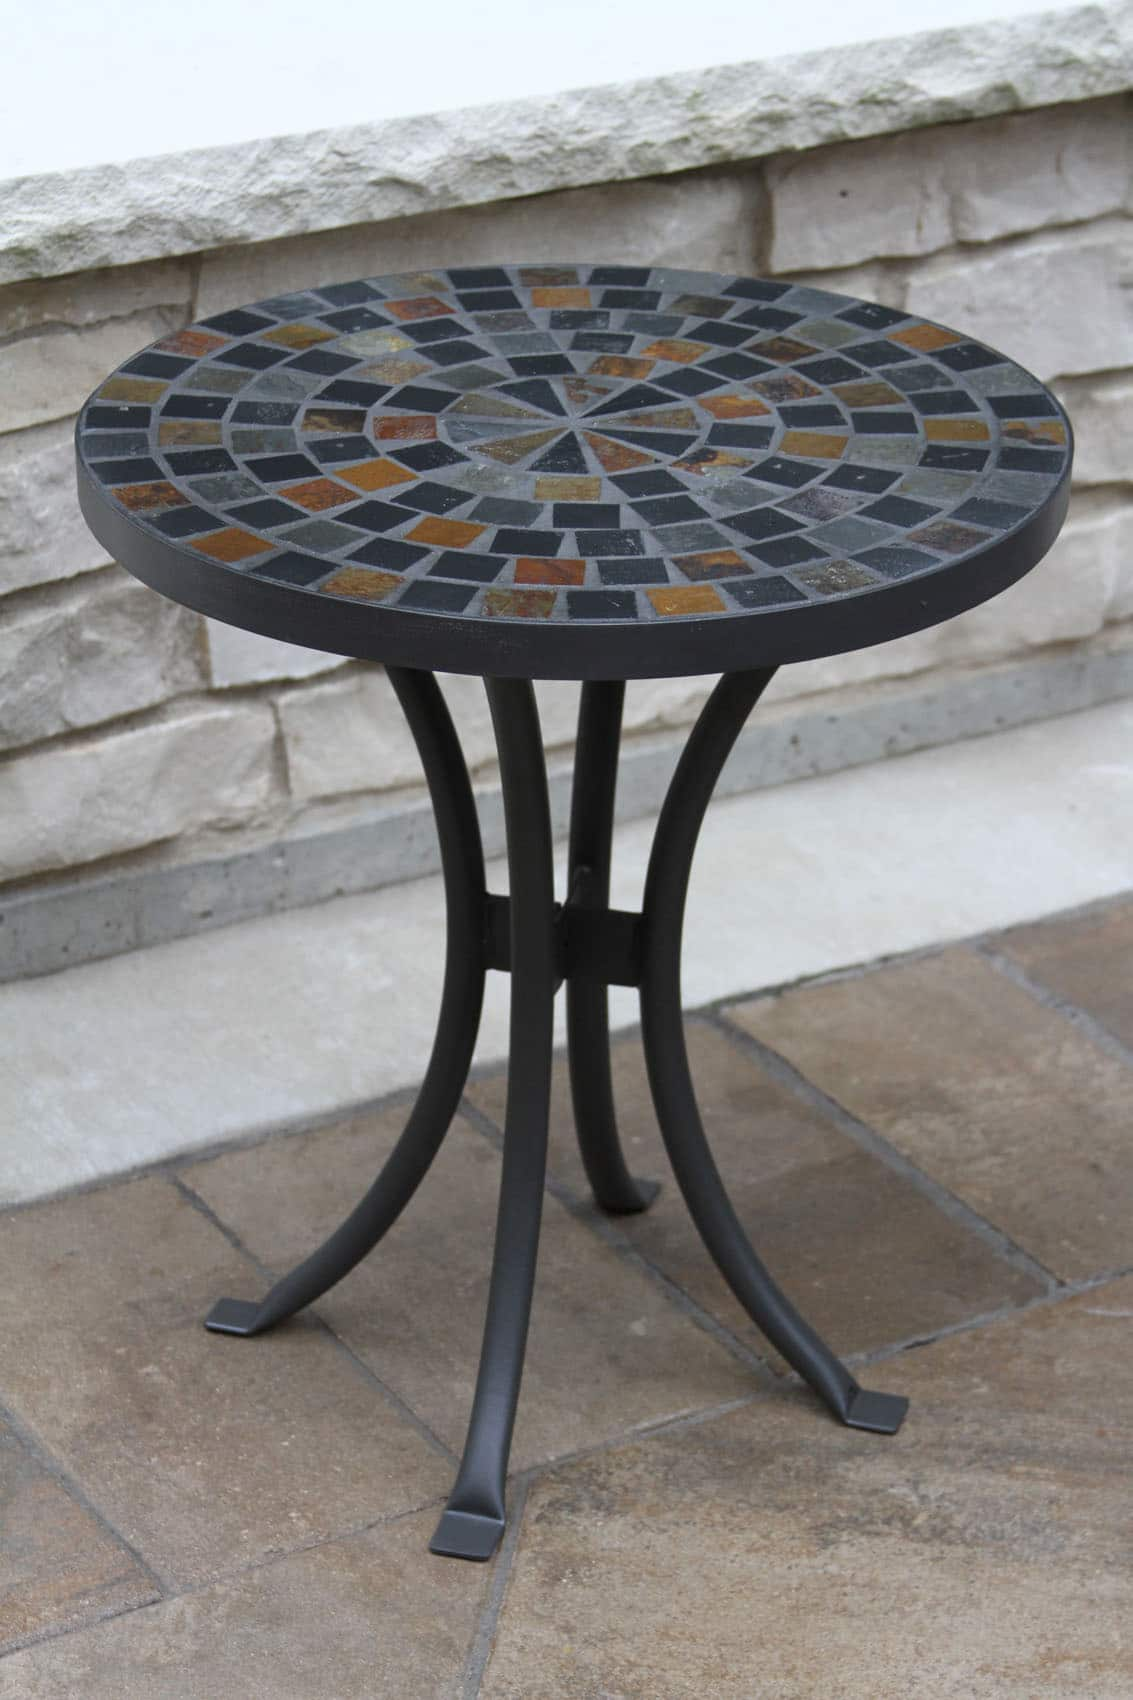 slate mosaic accent table for decks patios and gardens cobble stone outdoor chestnut side with storage baskets floor lamp set reclaimed wood coffee dale home crystal antique brass